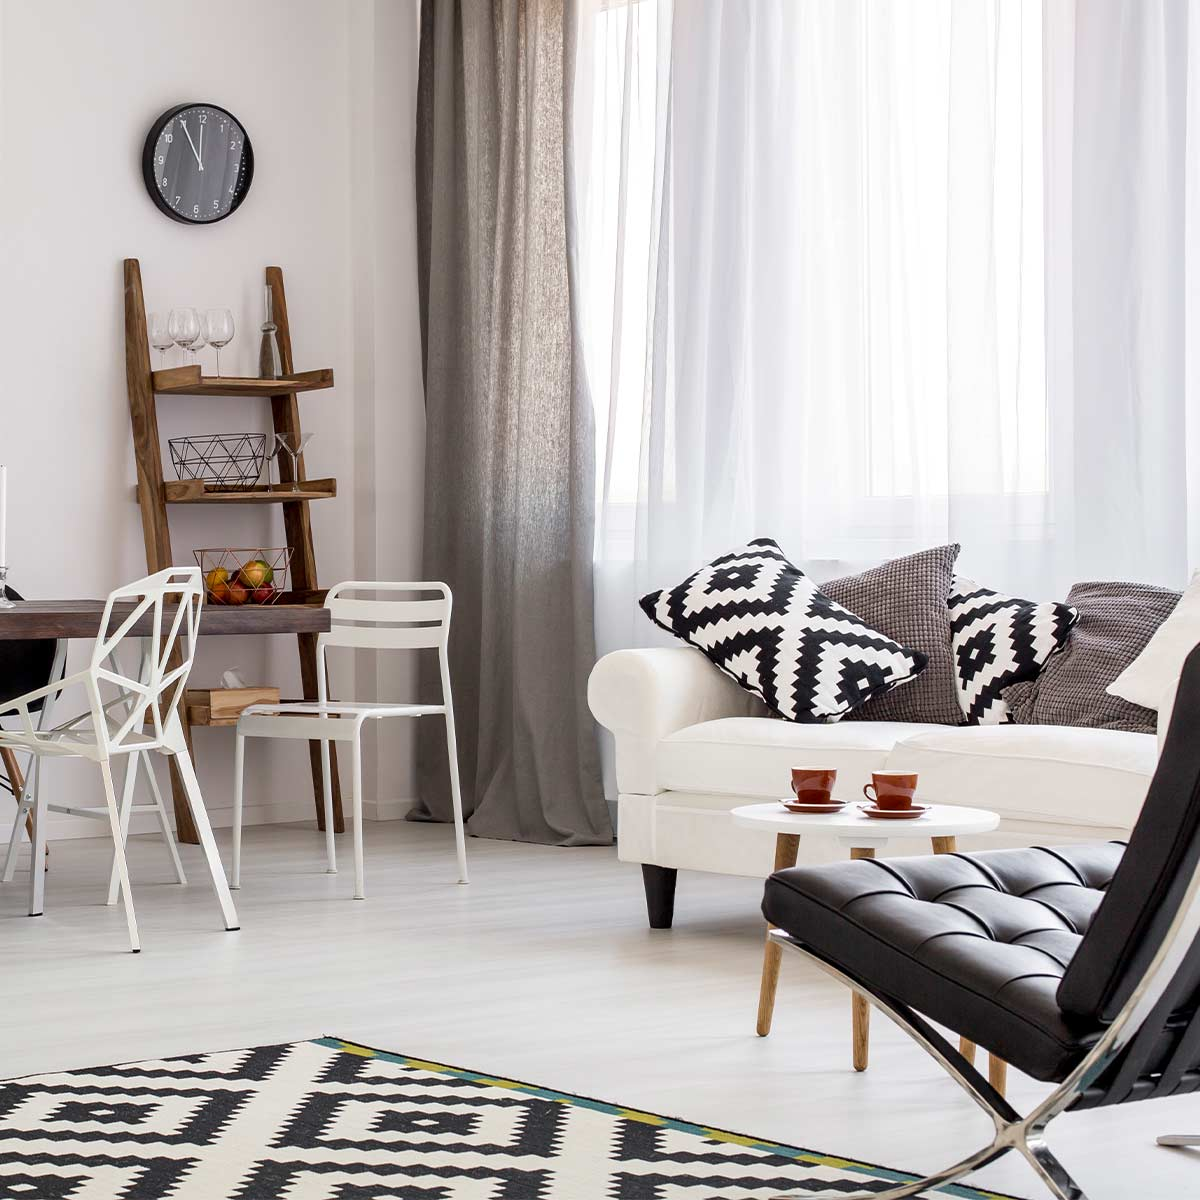 beautiful clutter-free room in neutral shades of black and white and gray with wood accents